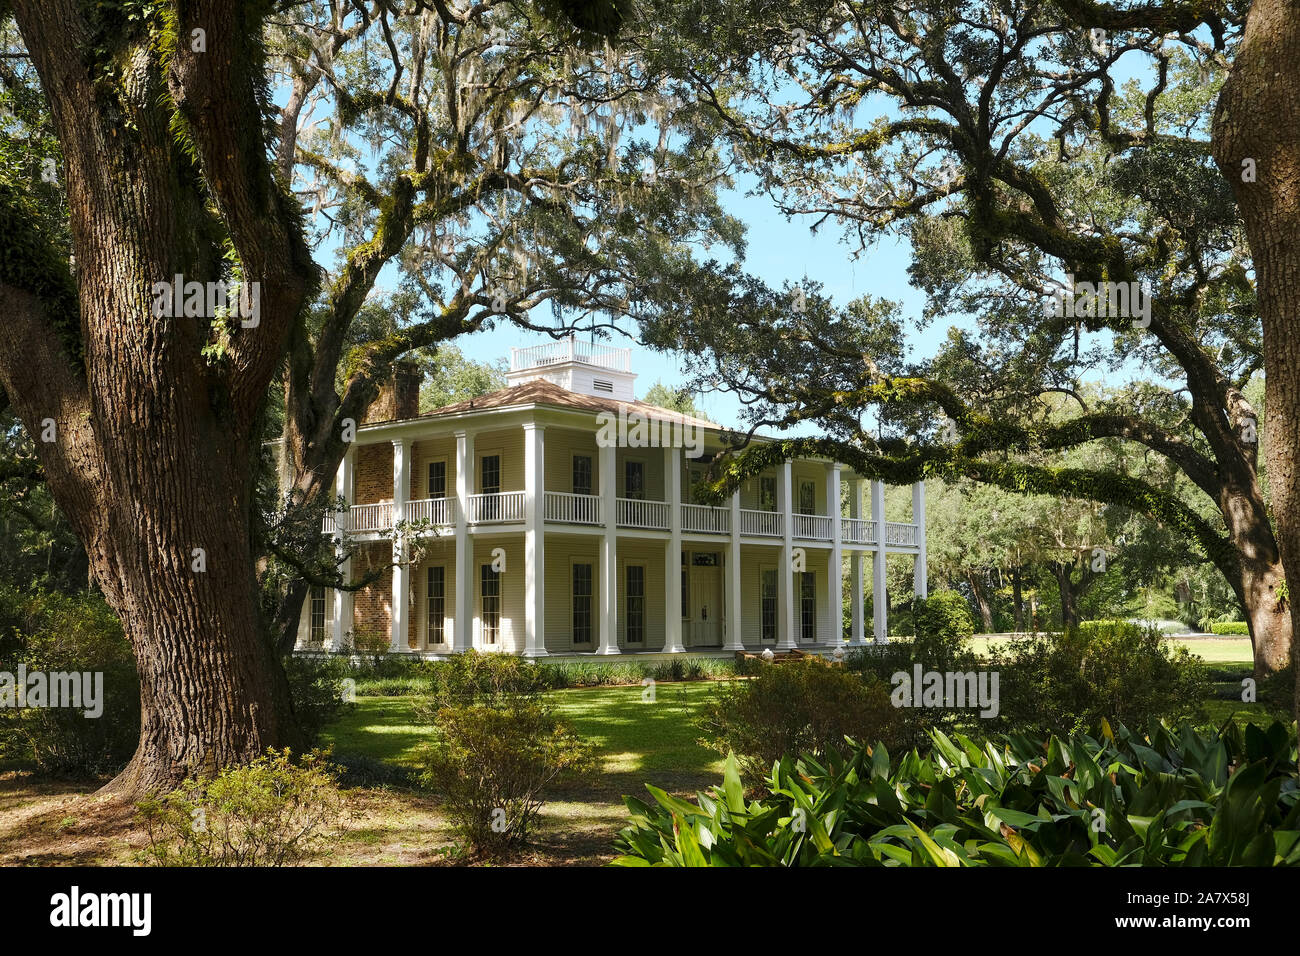 Eden Gardens State Park grounds with the plantation style house of William Henry Wesley amid towering live oak trees in Santa Rosa Beach Florida USA. Stock Photo